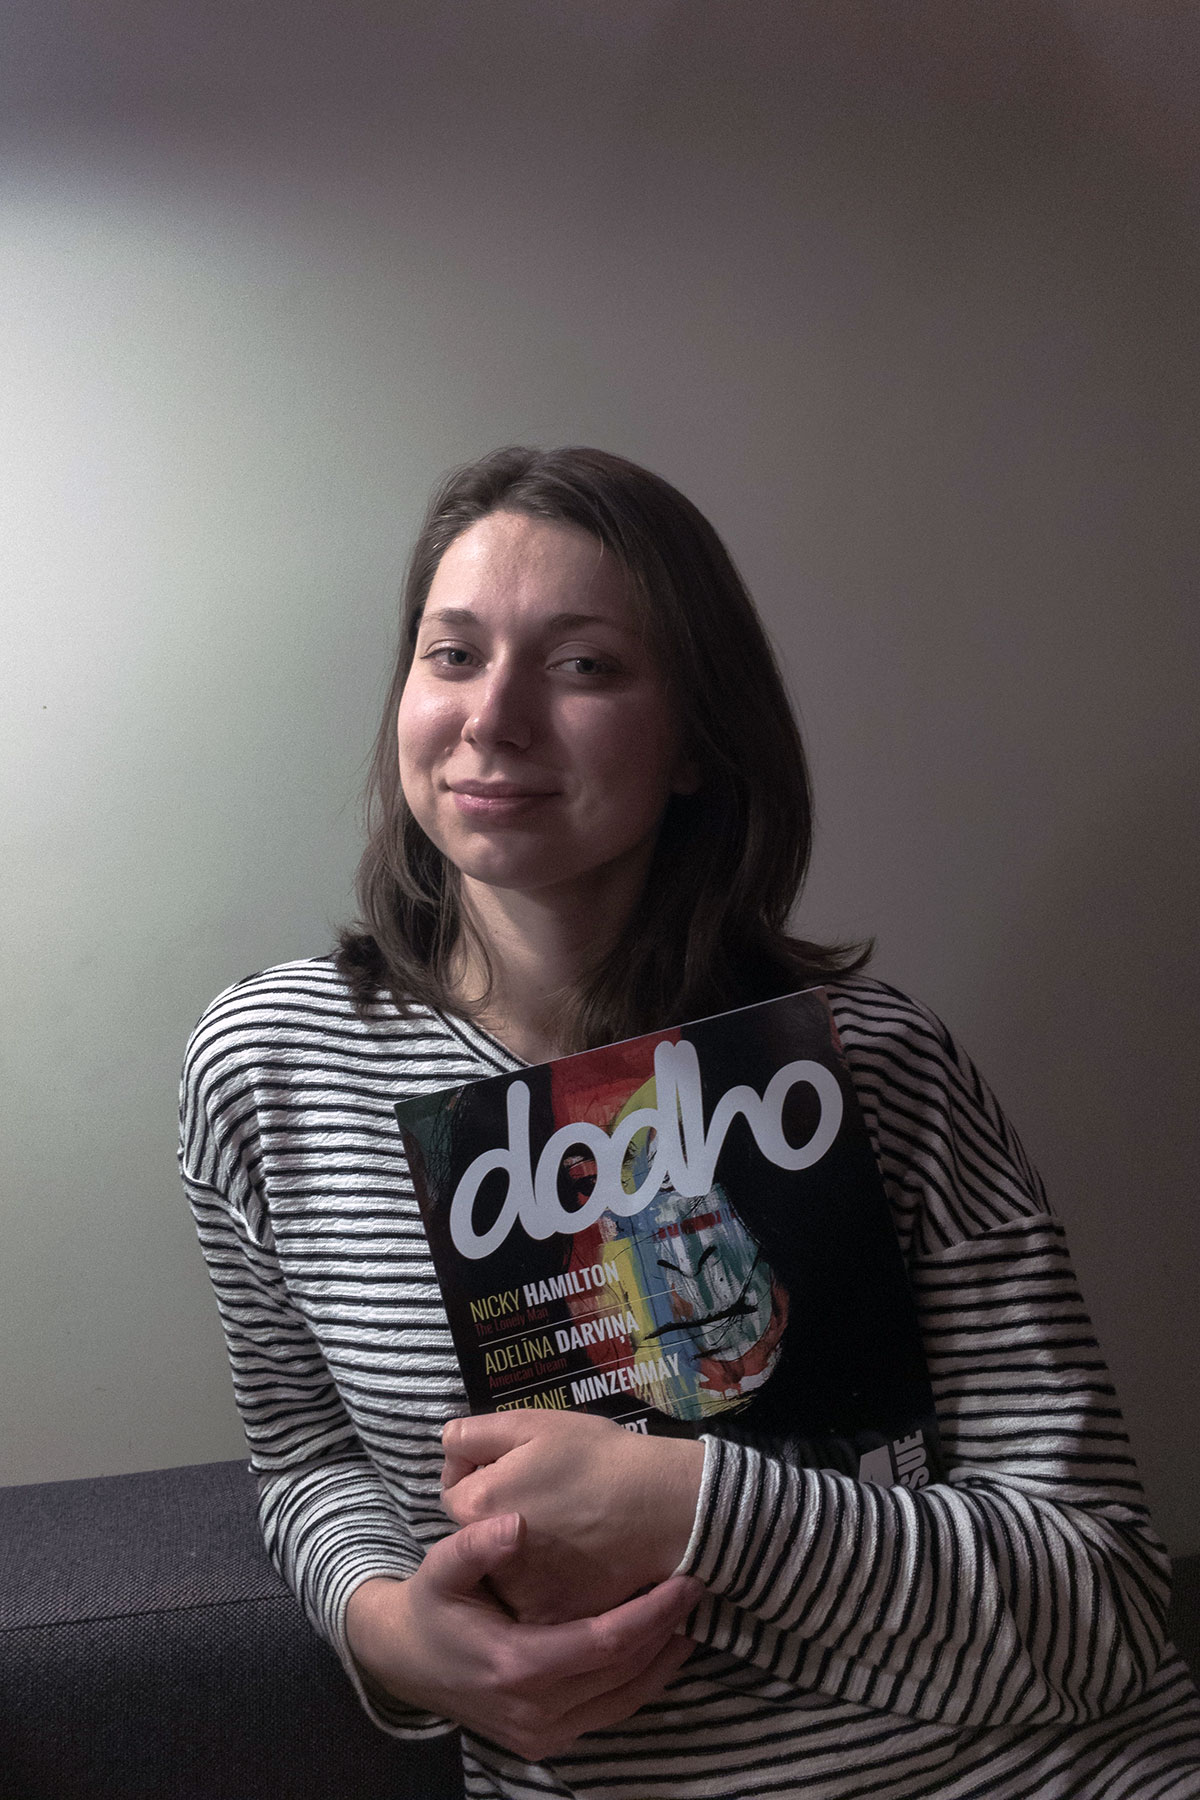 Interview with Adelīna Darviņa